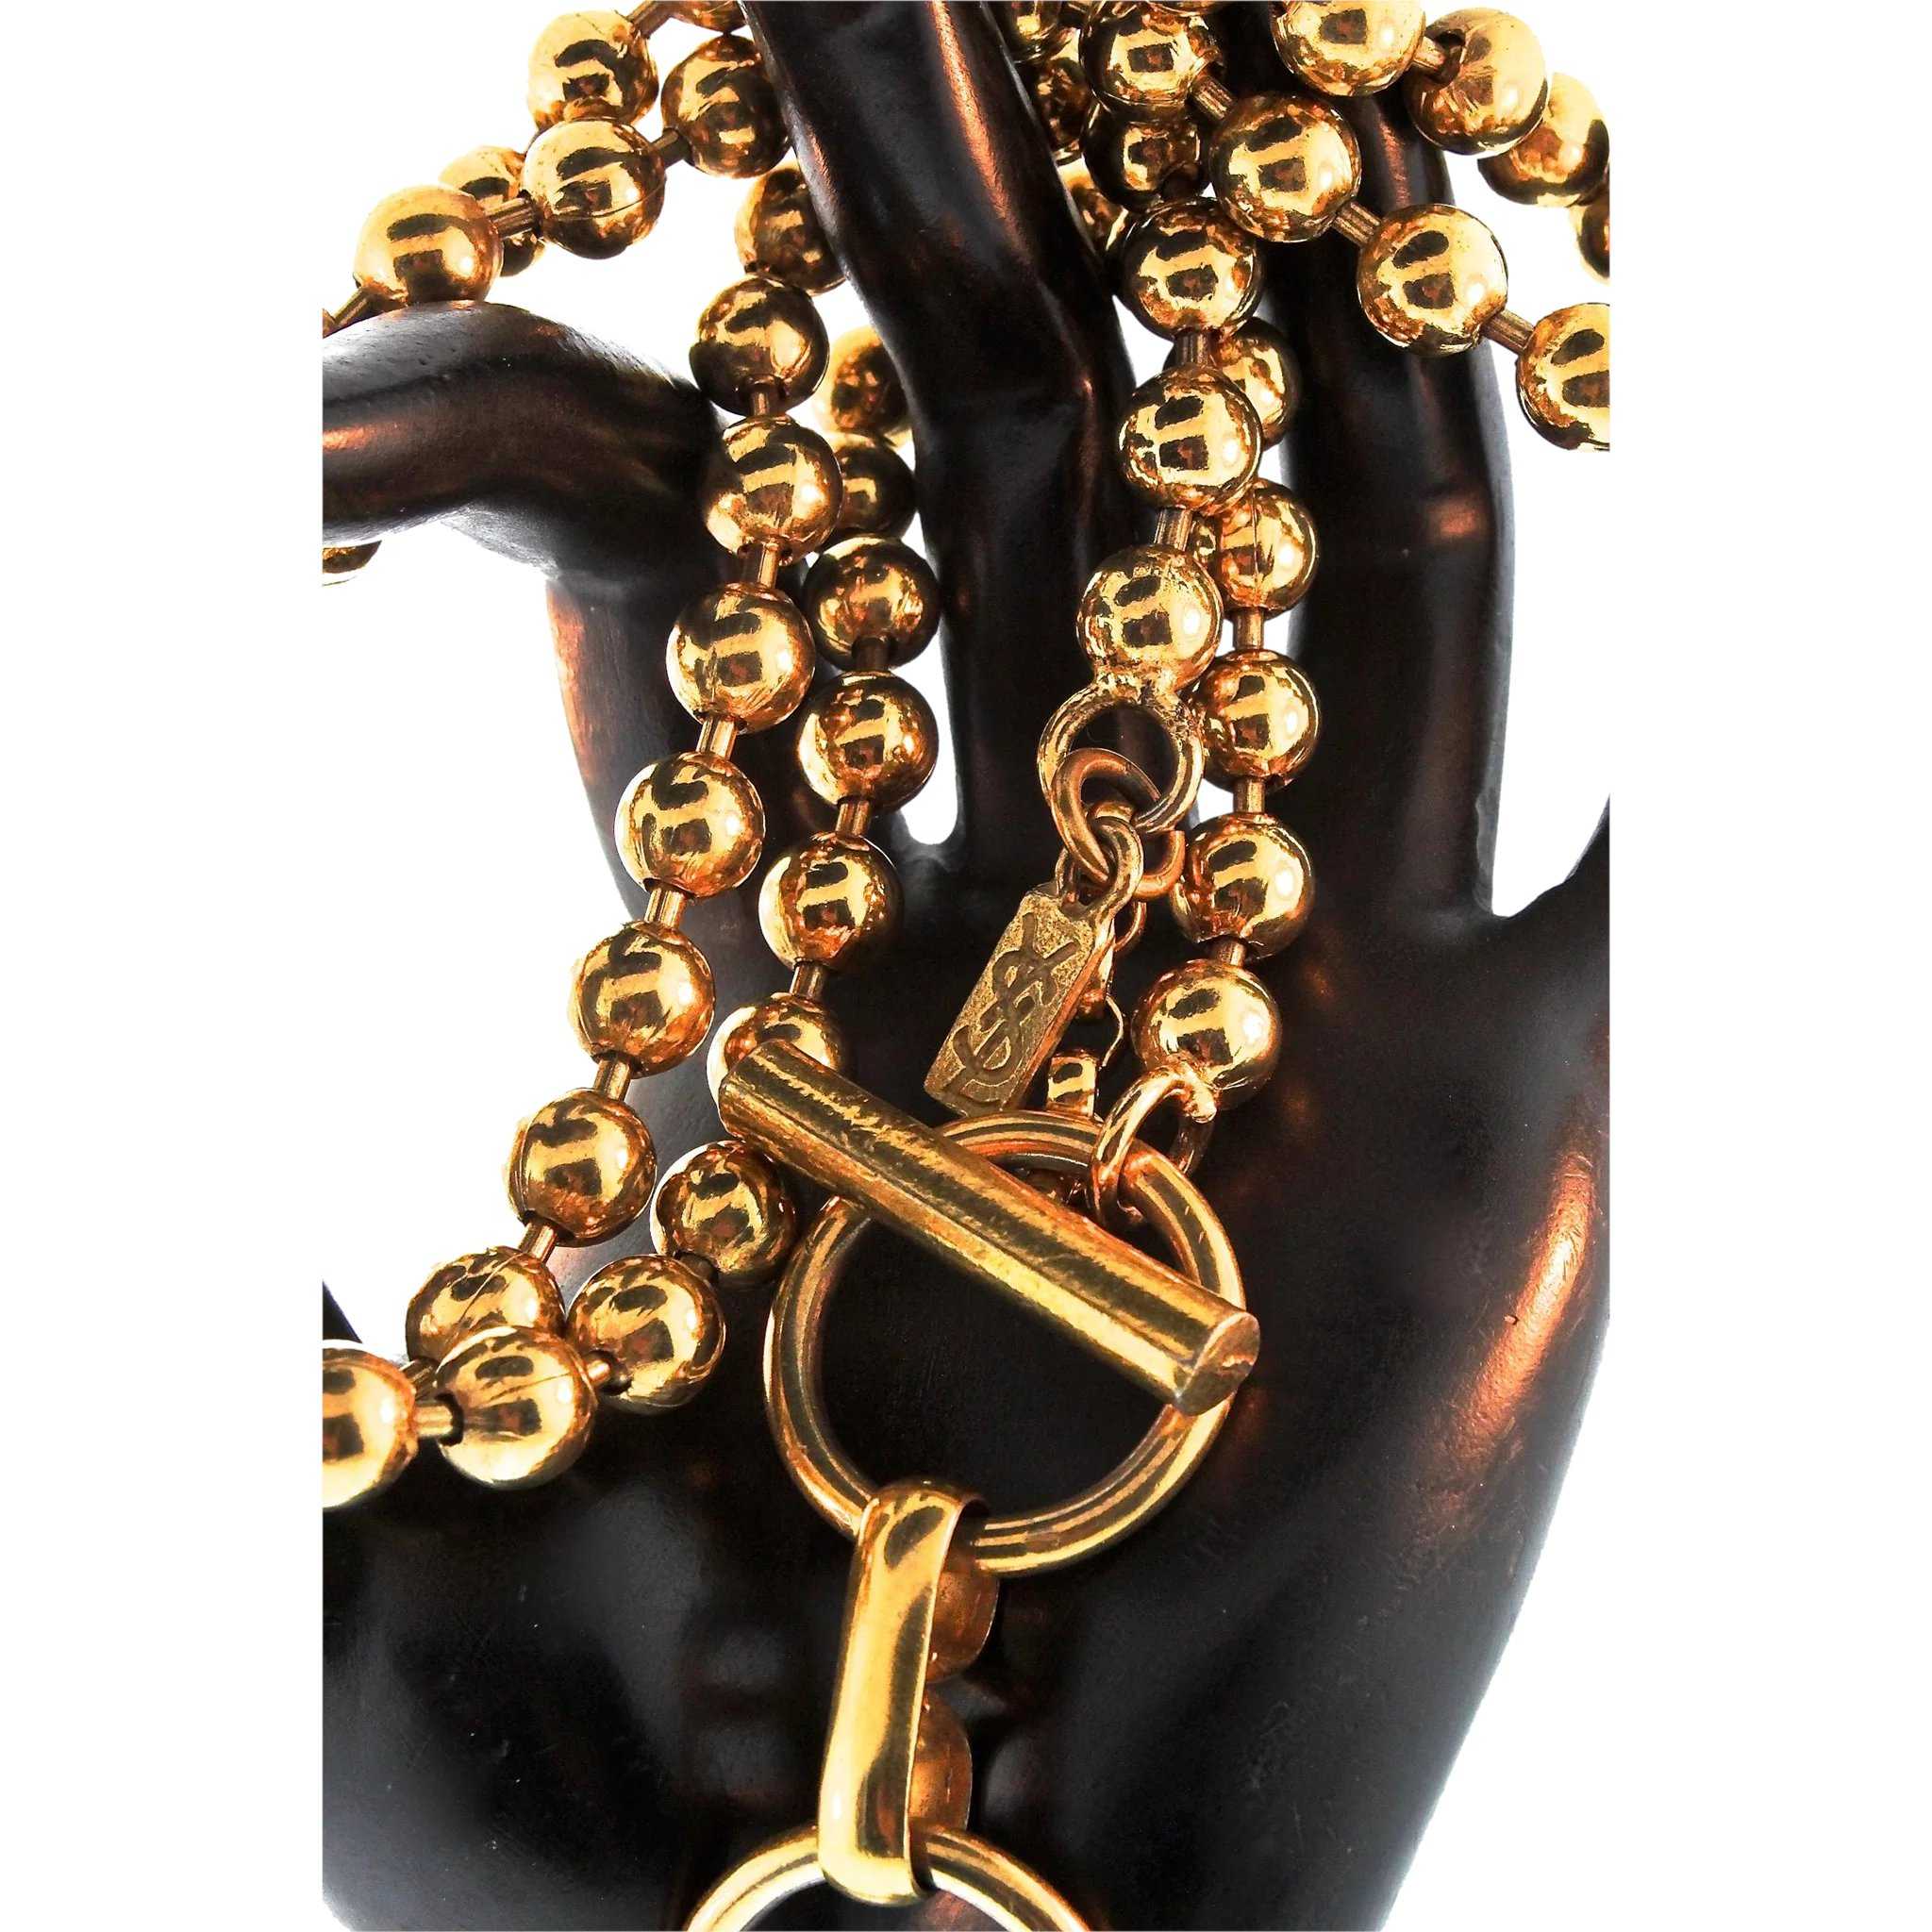 b9b90ea7c33 Vintage 1970s Couture YVES SAINT LAURENT YSL Gold Ball Bead Chain Belt :  The Dealhuntress Treasure Chest | Ruby Lane